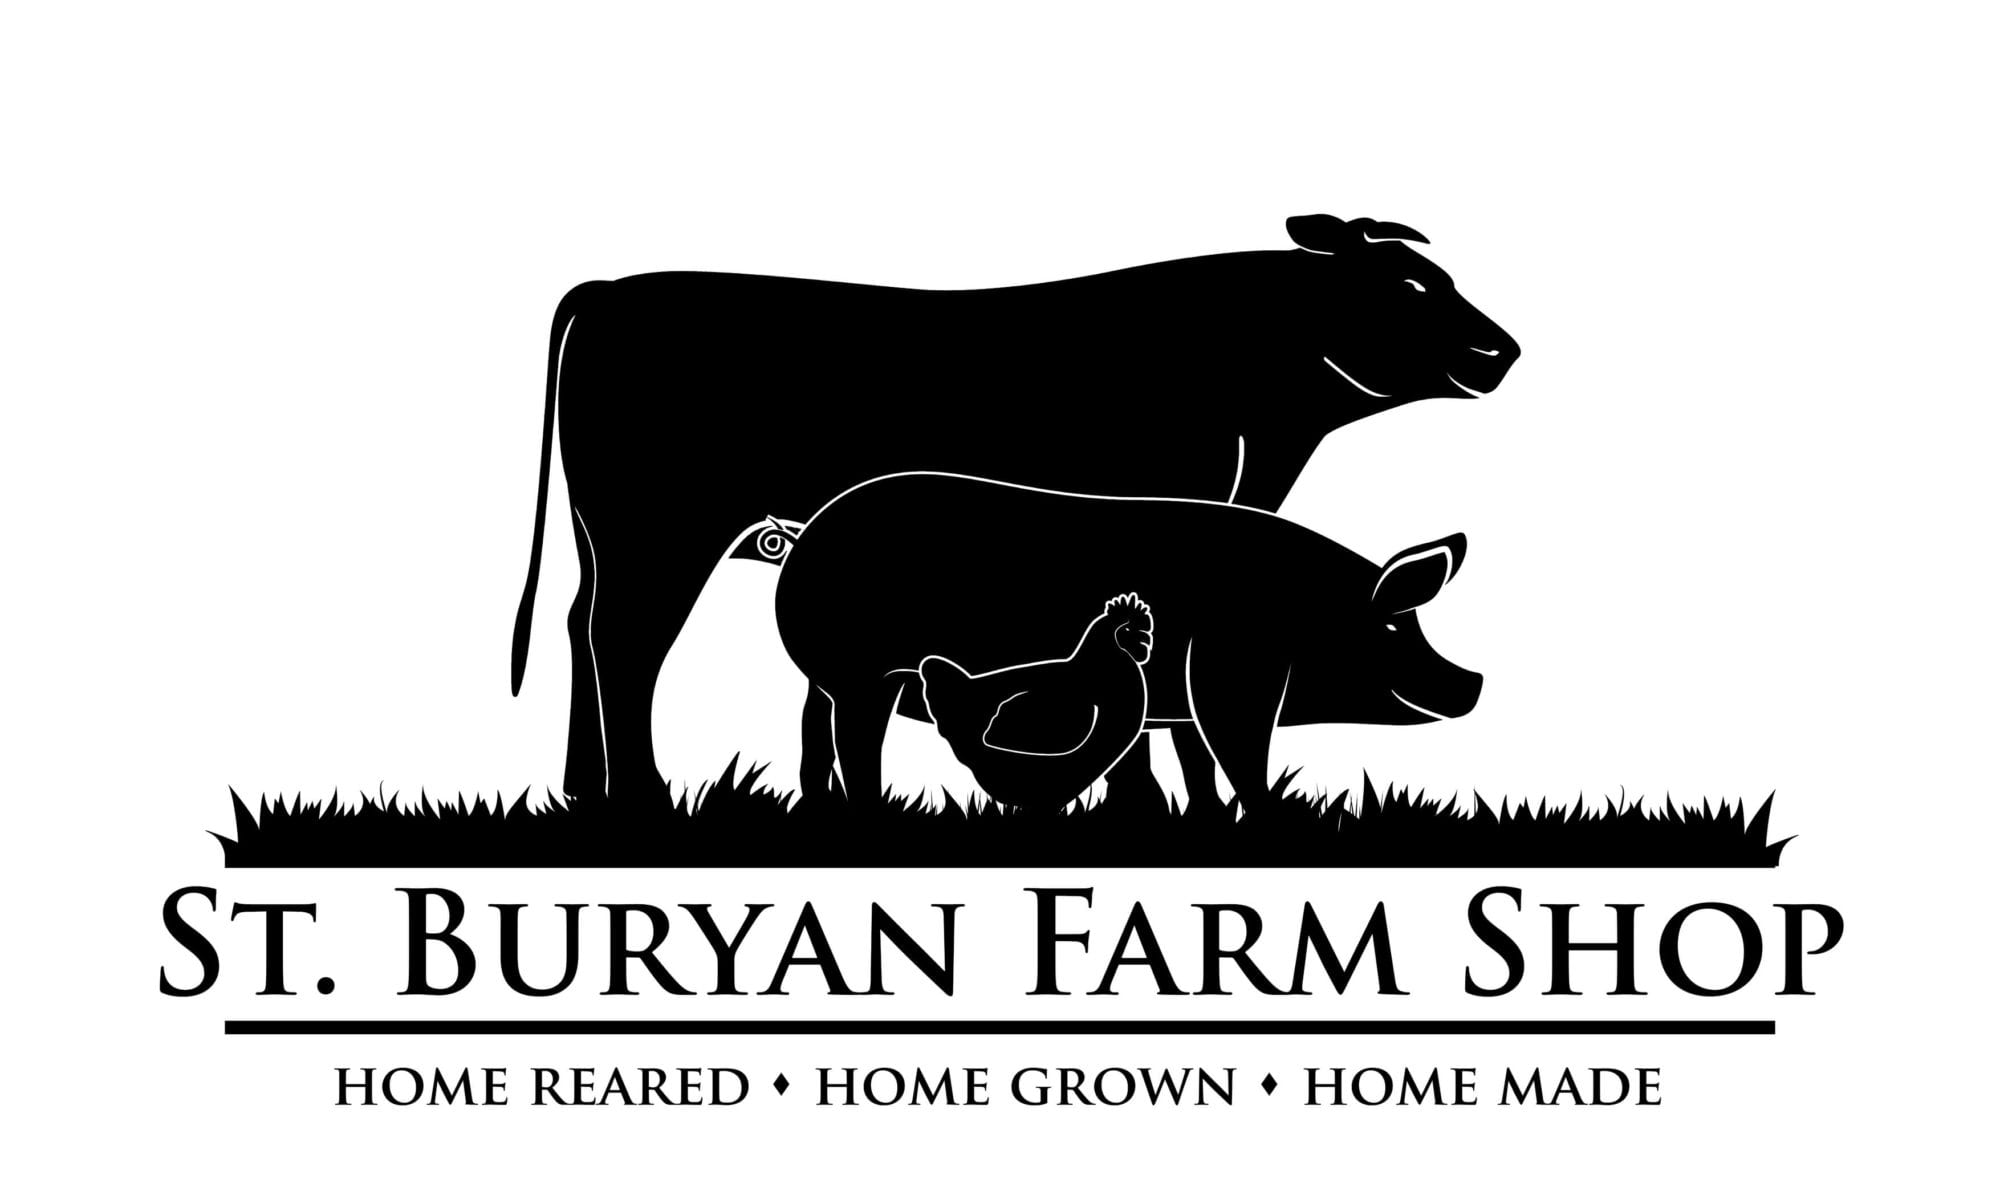 St Buryan Farm Shop